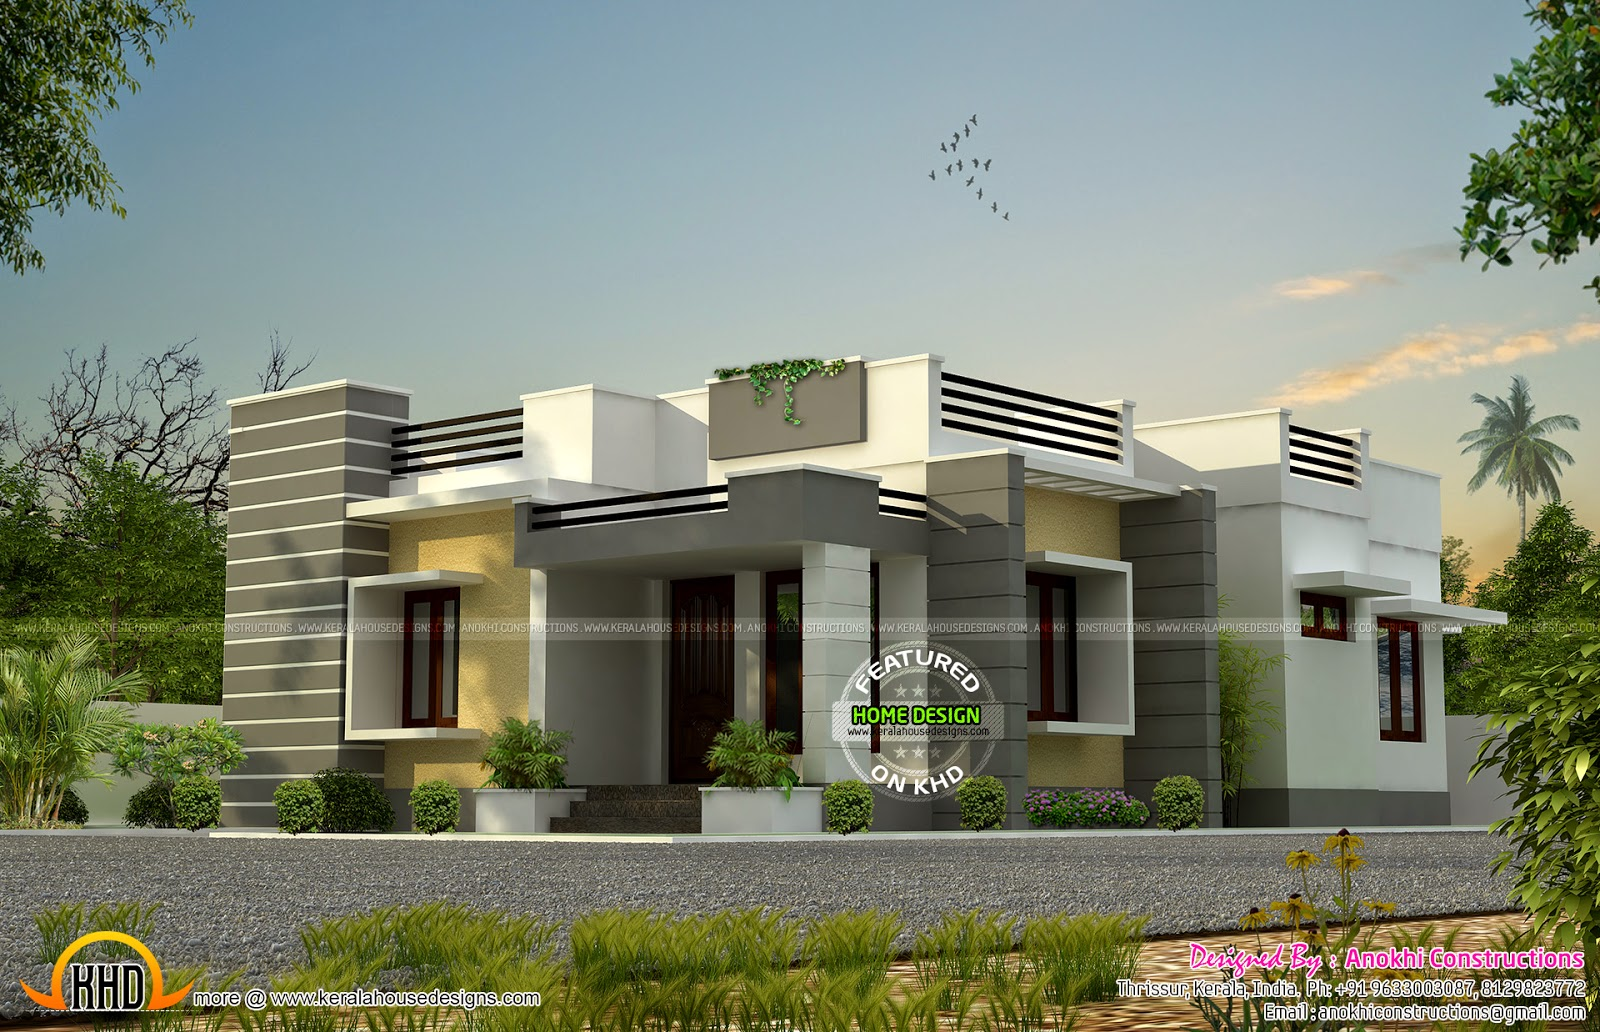 Nice budget house design kerala home design and floor plans Home design and budget